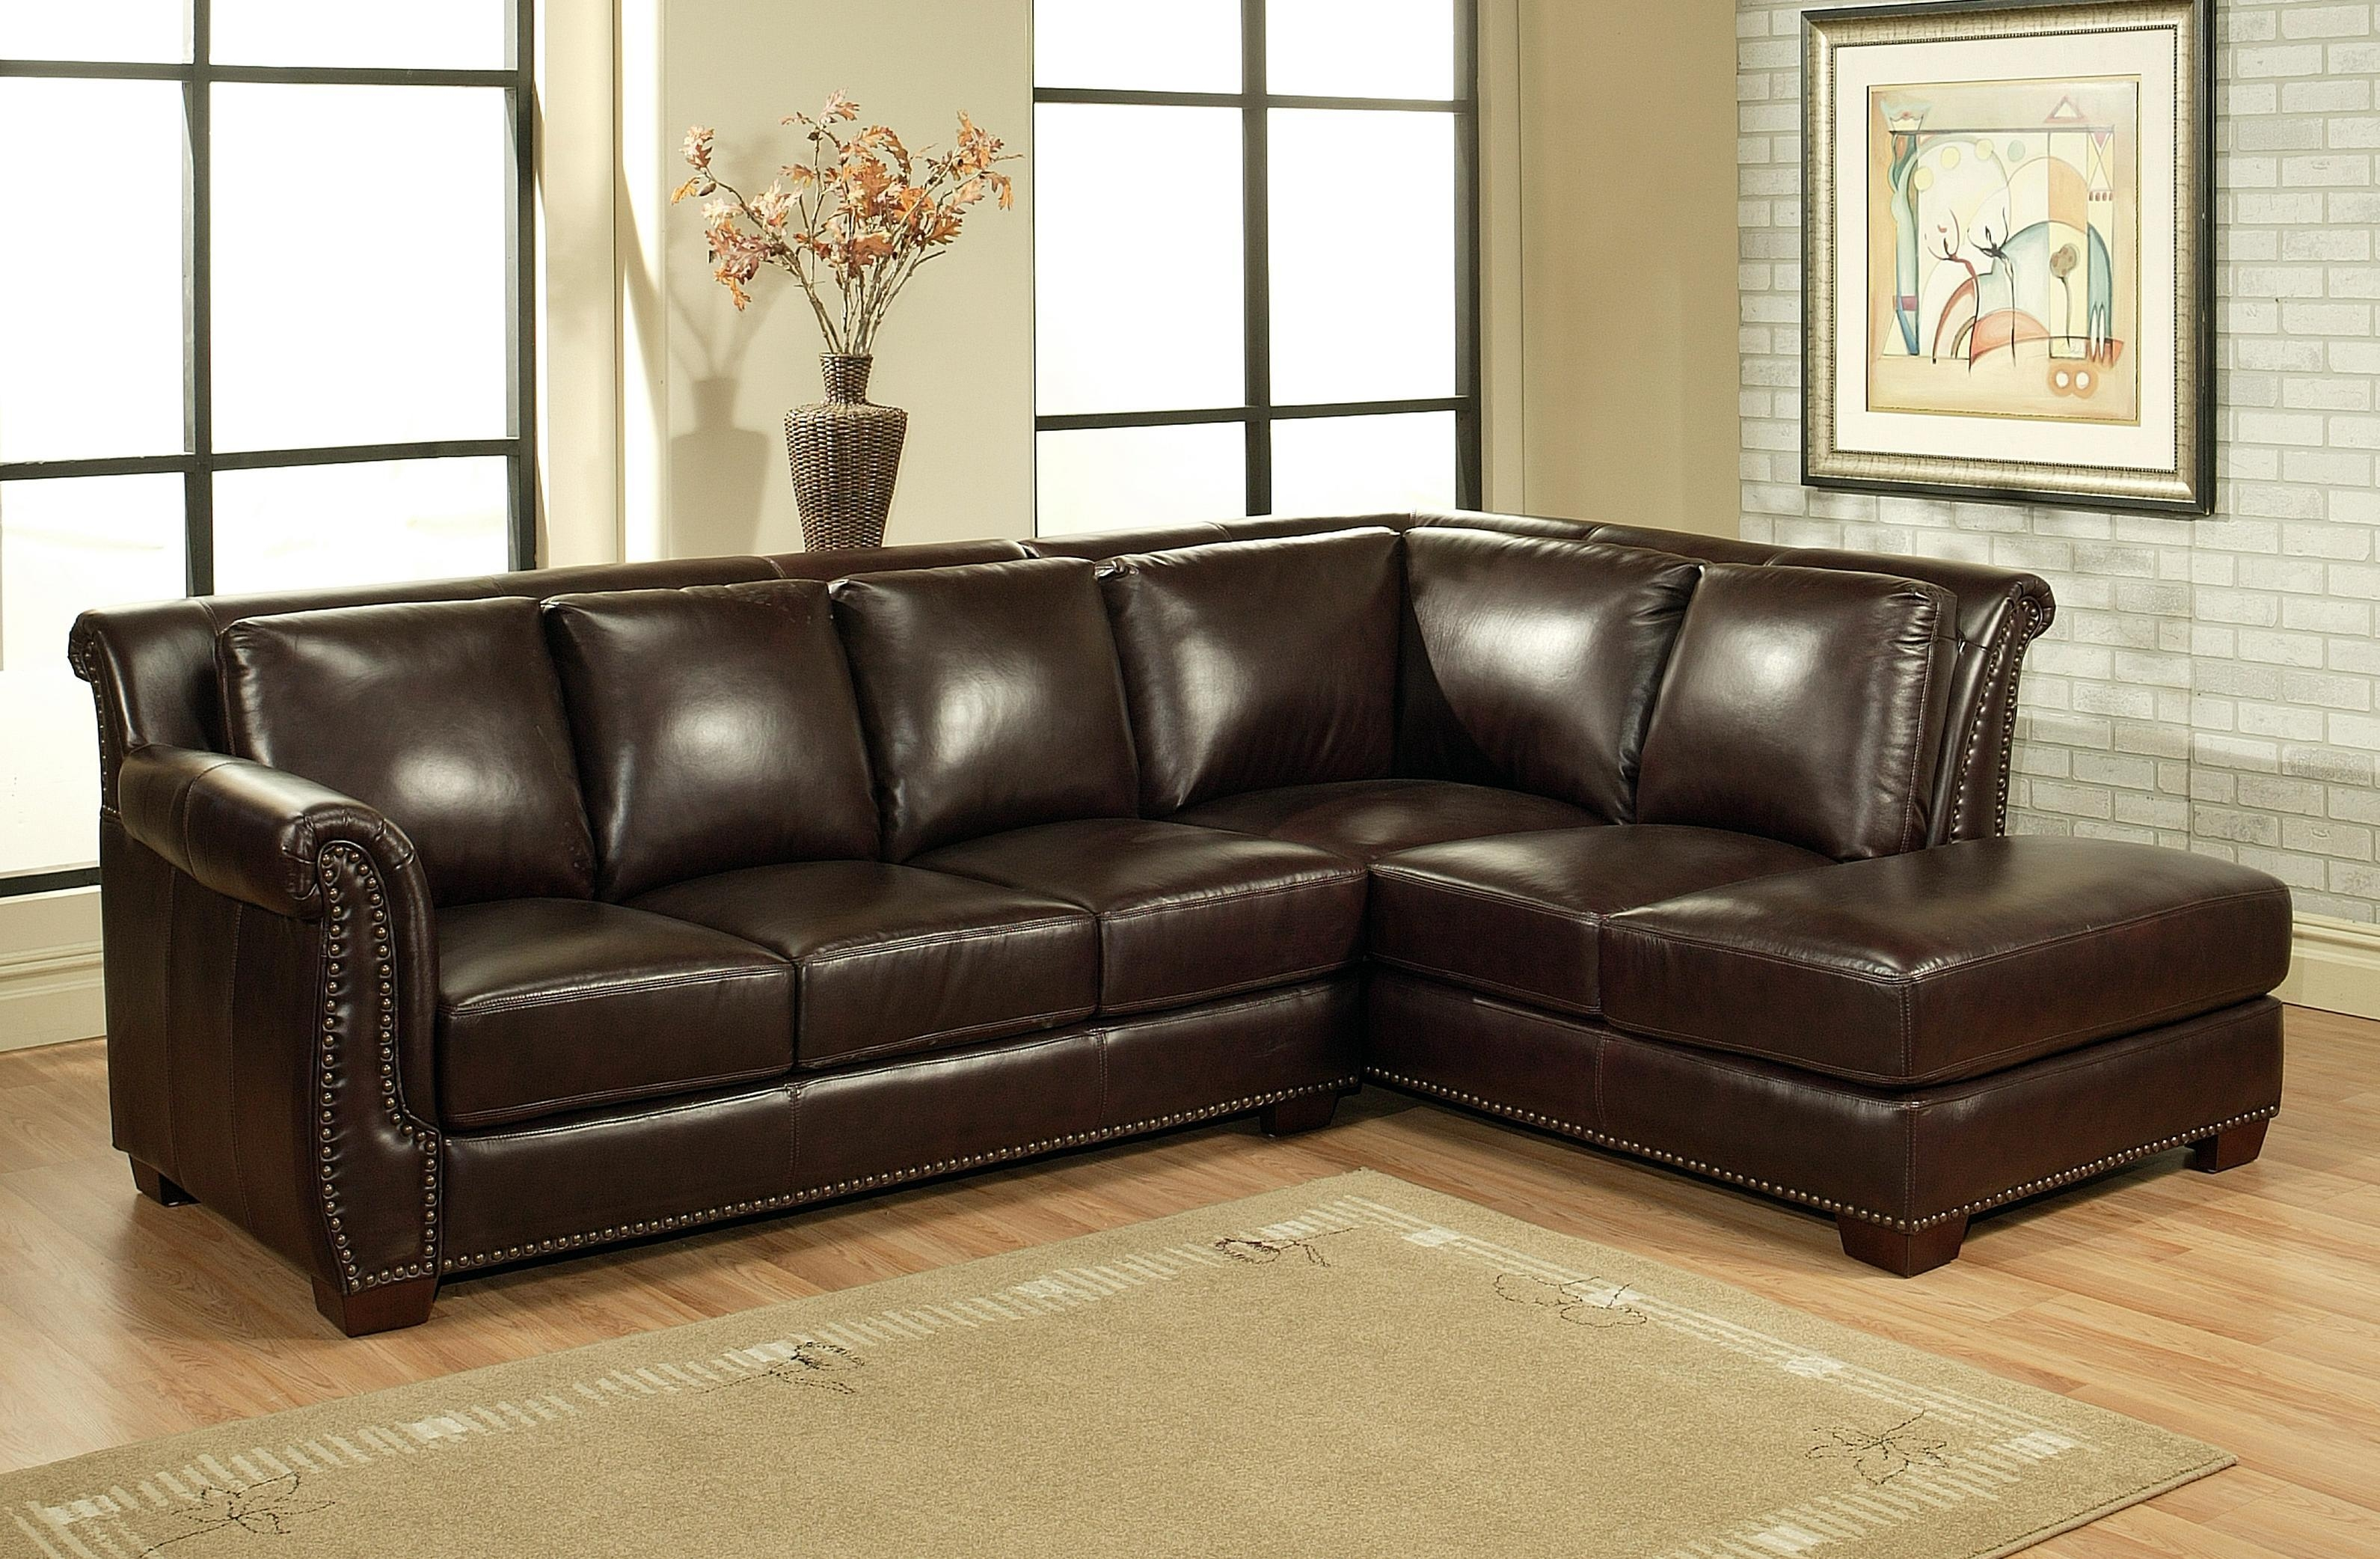 Sofas : Marvelous Small Leather Sofa Luxury Leather Sofas Leather For Leather Sofa Sectionals For Sale (View 18 of 20)